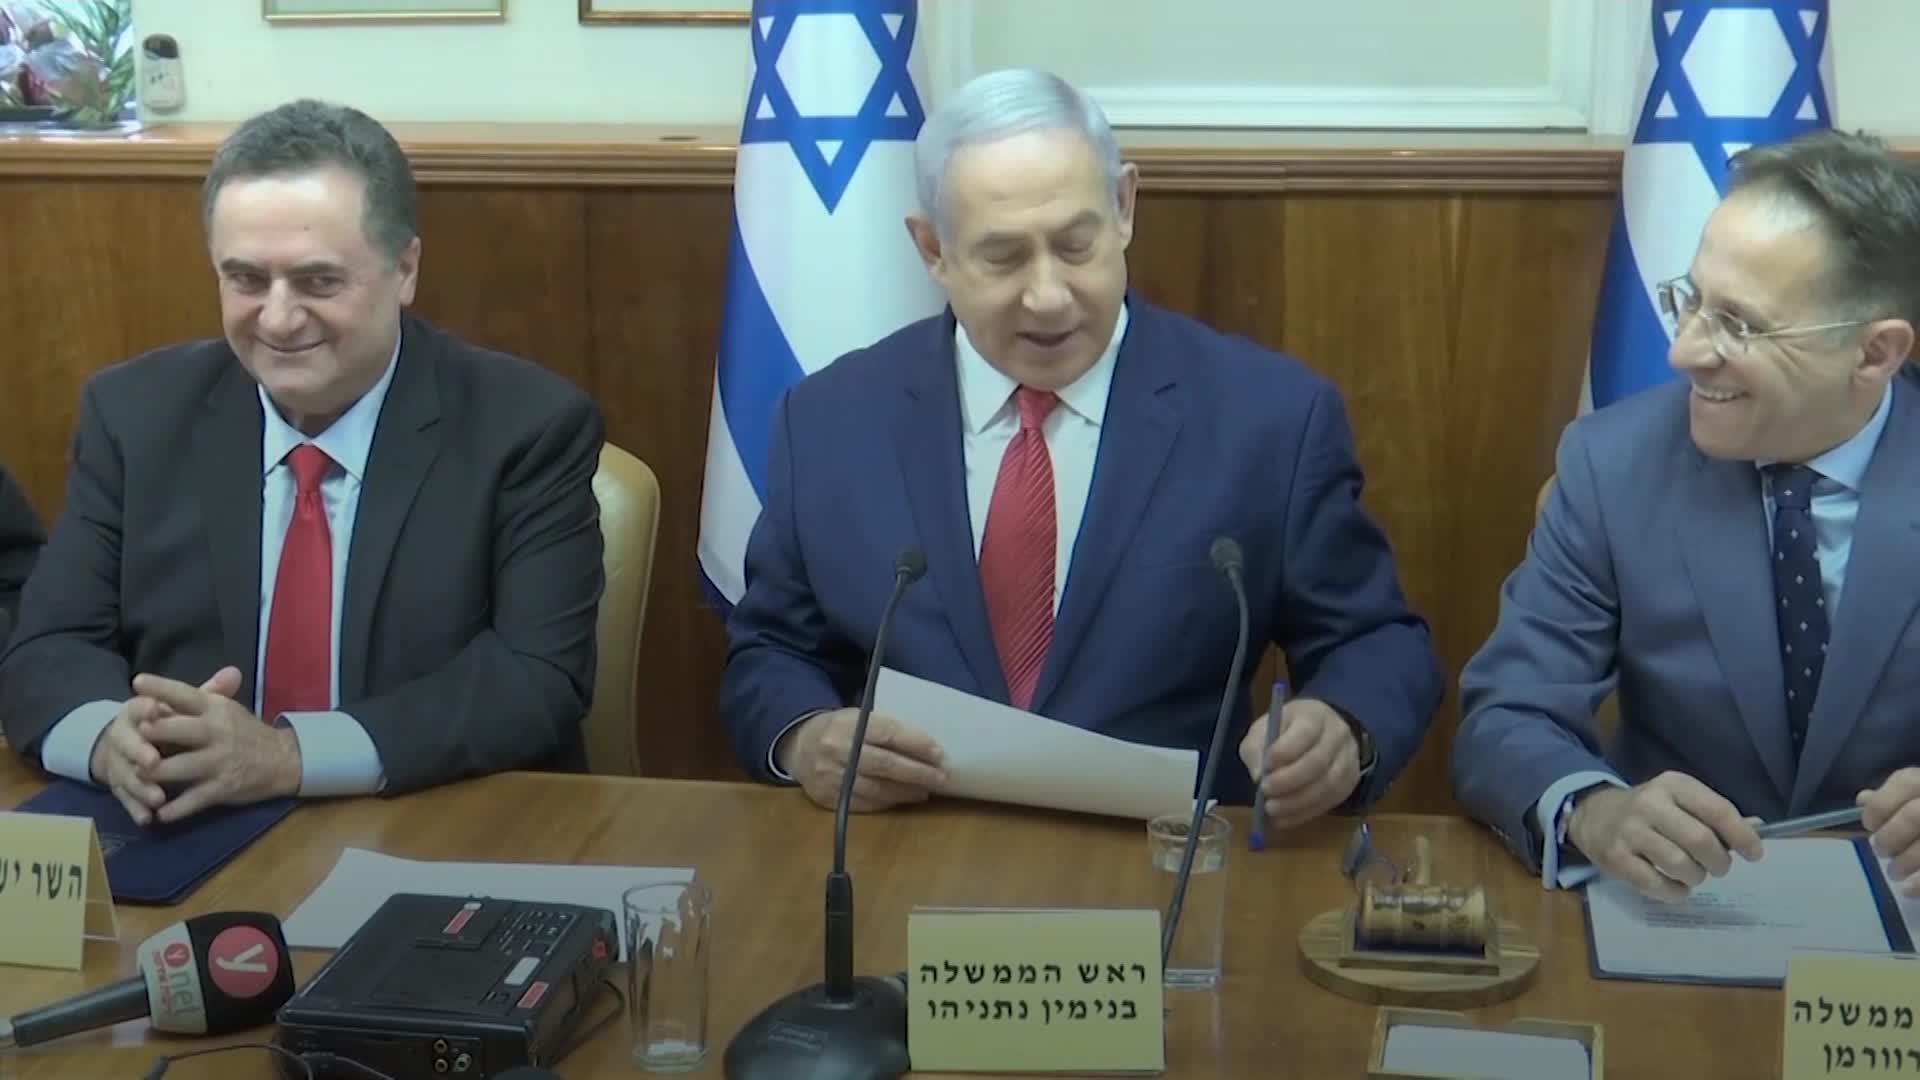 Netanyahu Botches Boris Johnson's Name, Official Video Attempts To Cover It Up